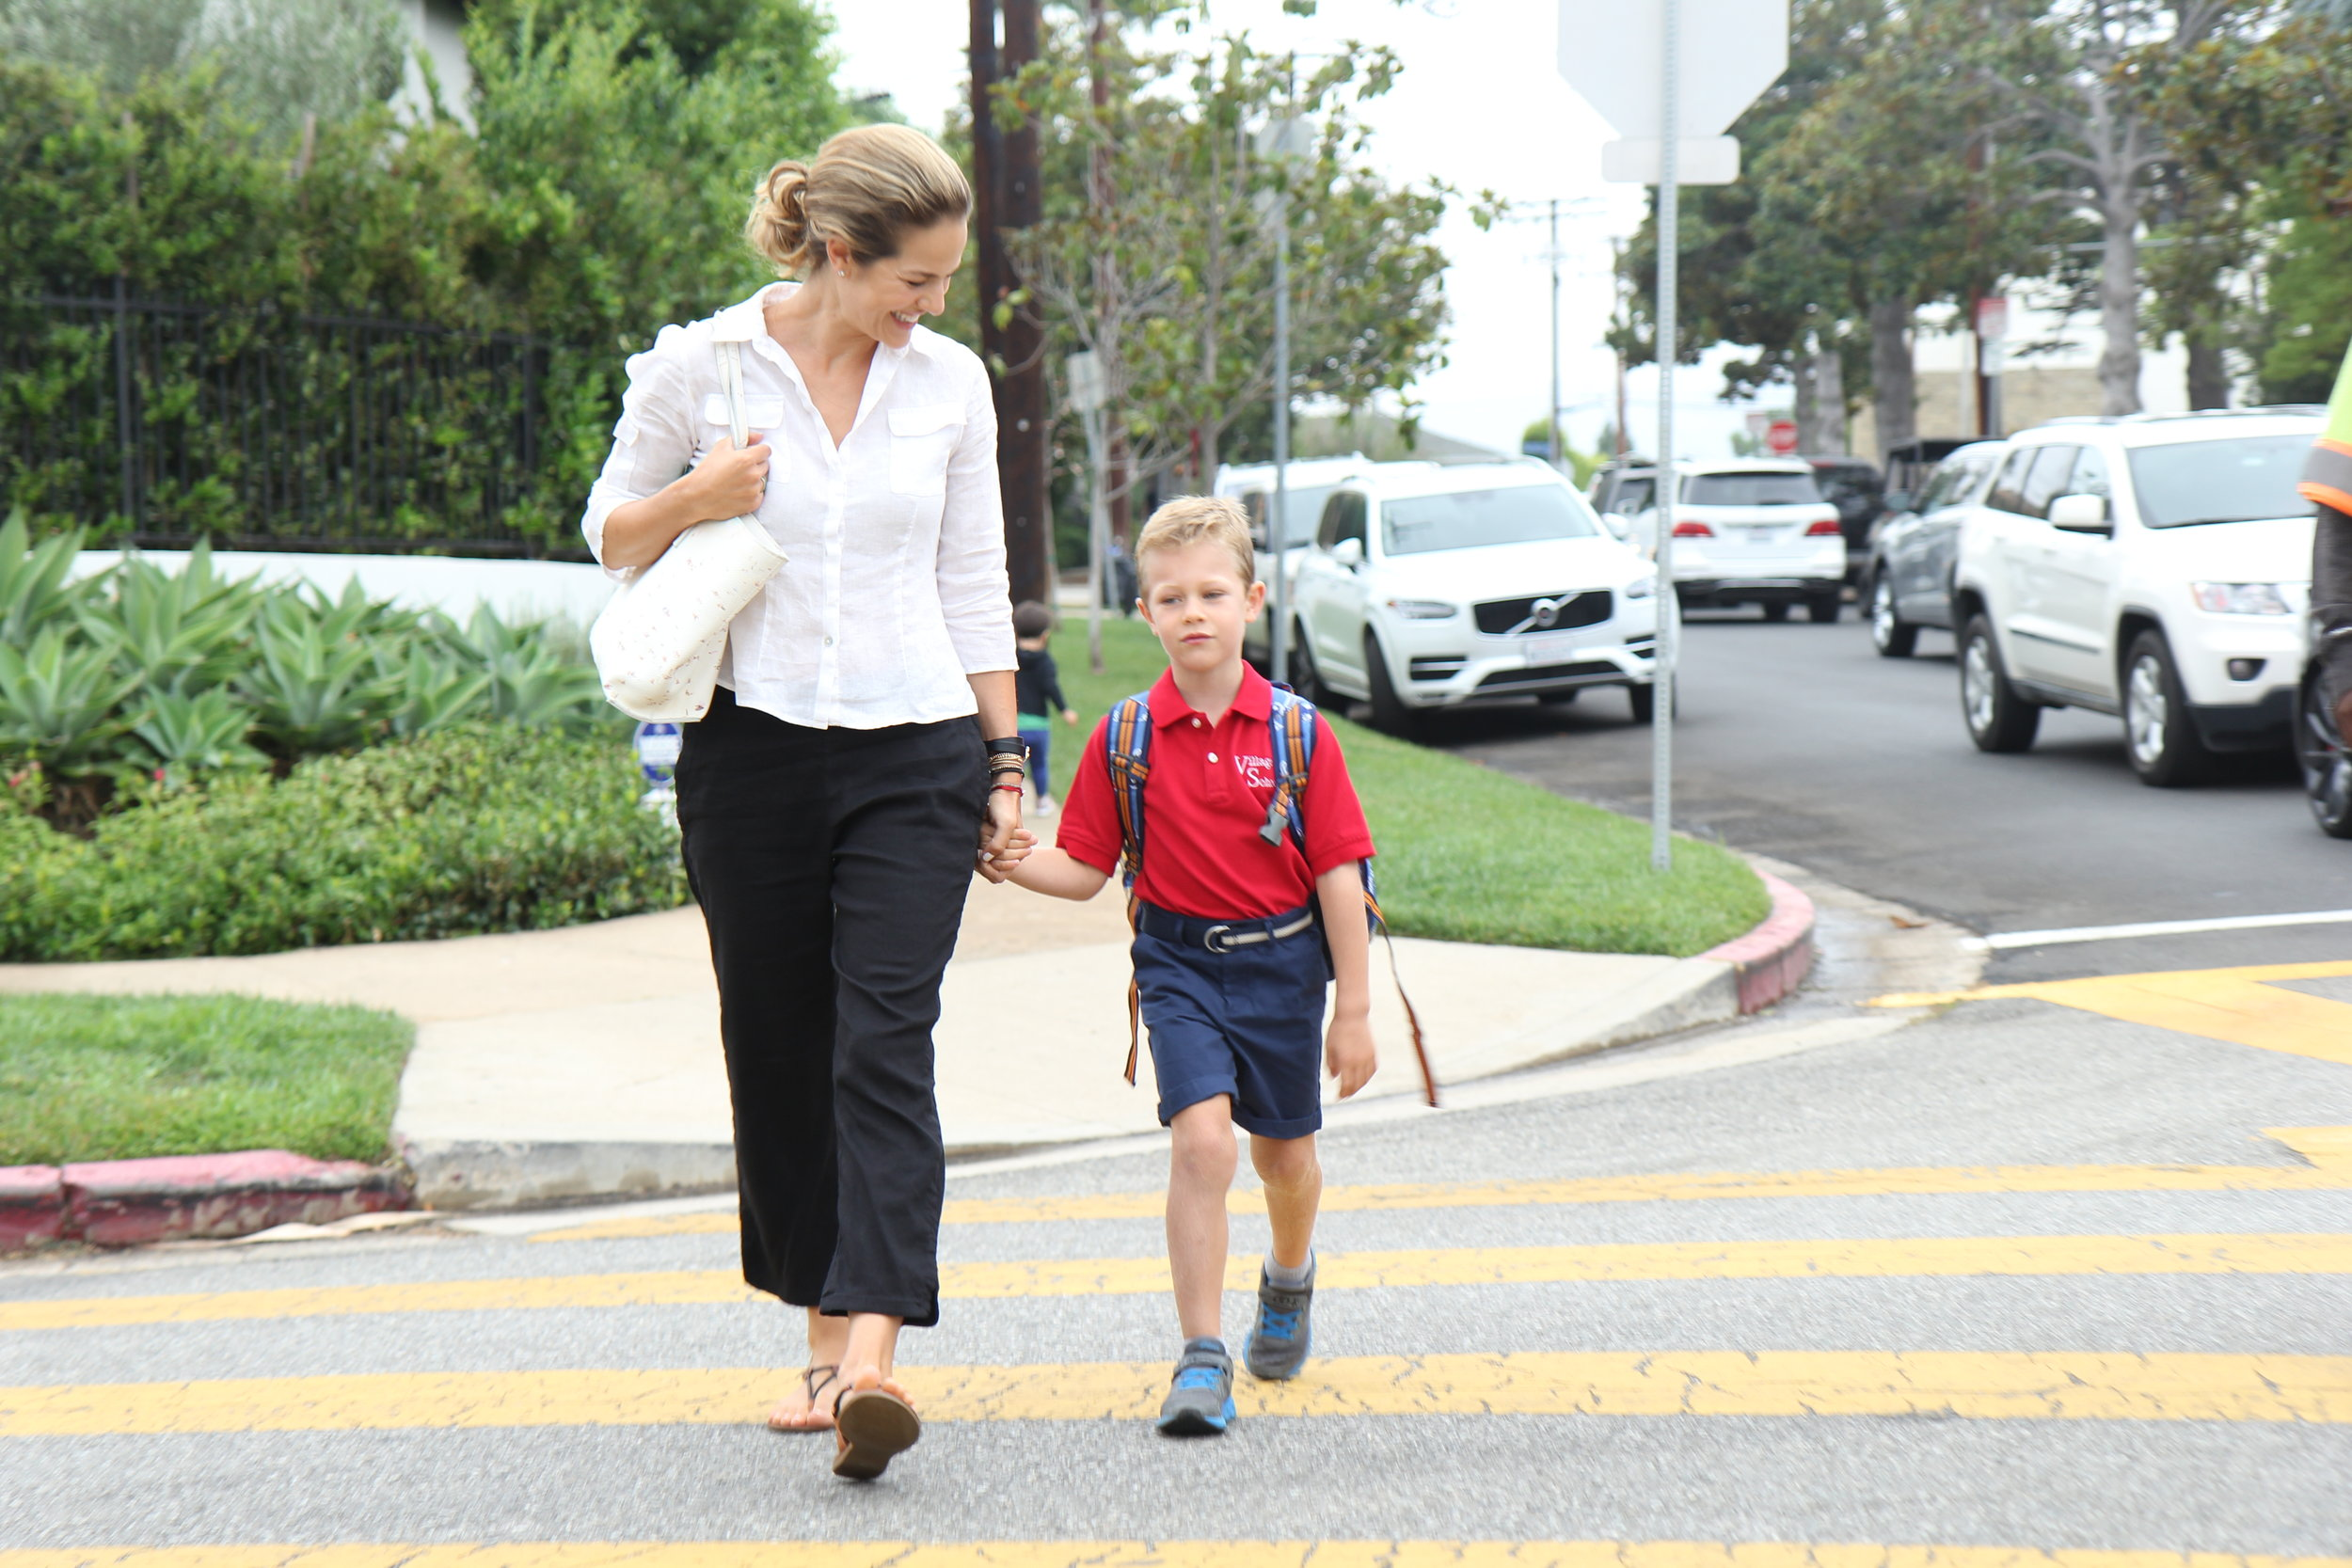 Zelana Montminy walking with son across street